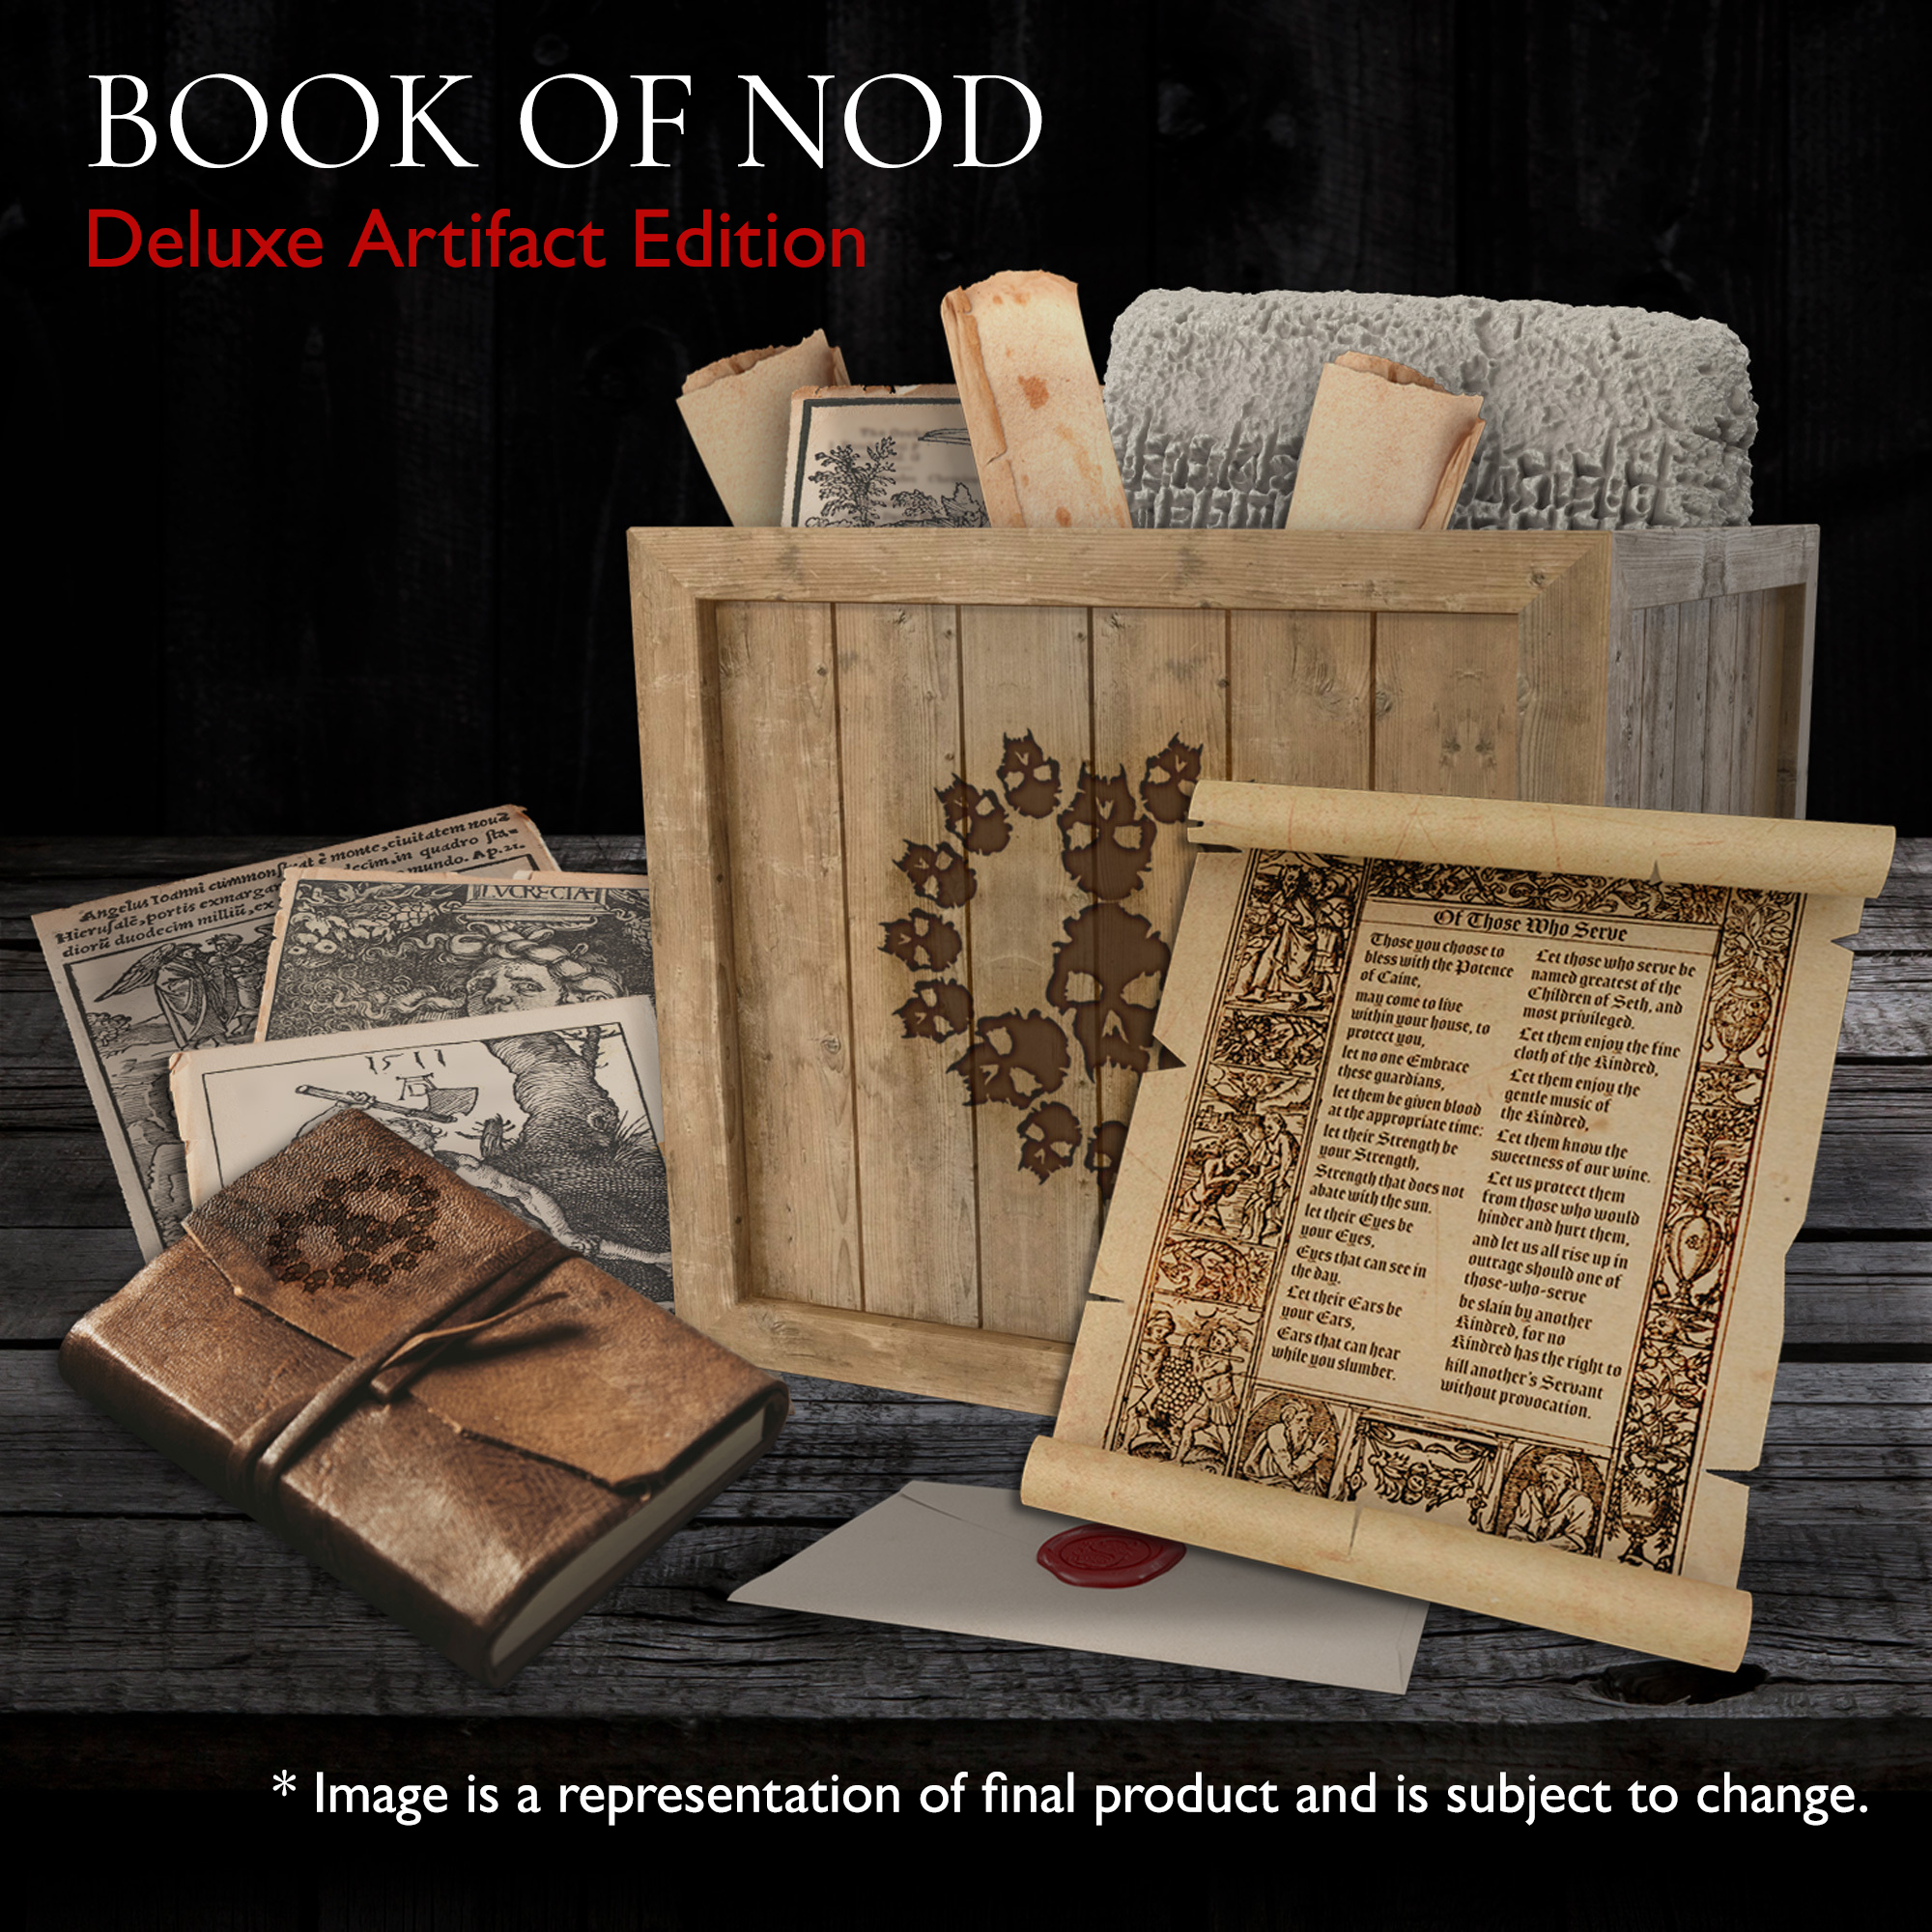 book-of-nod-graphics-2000px.png